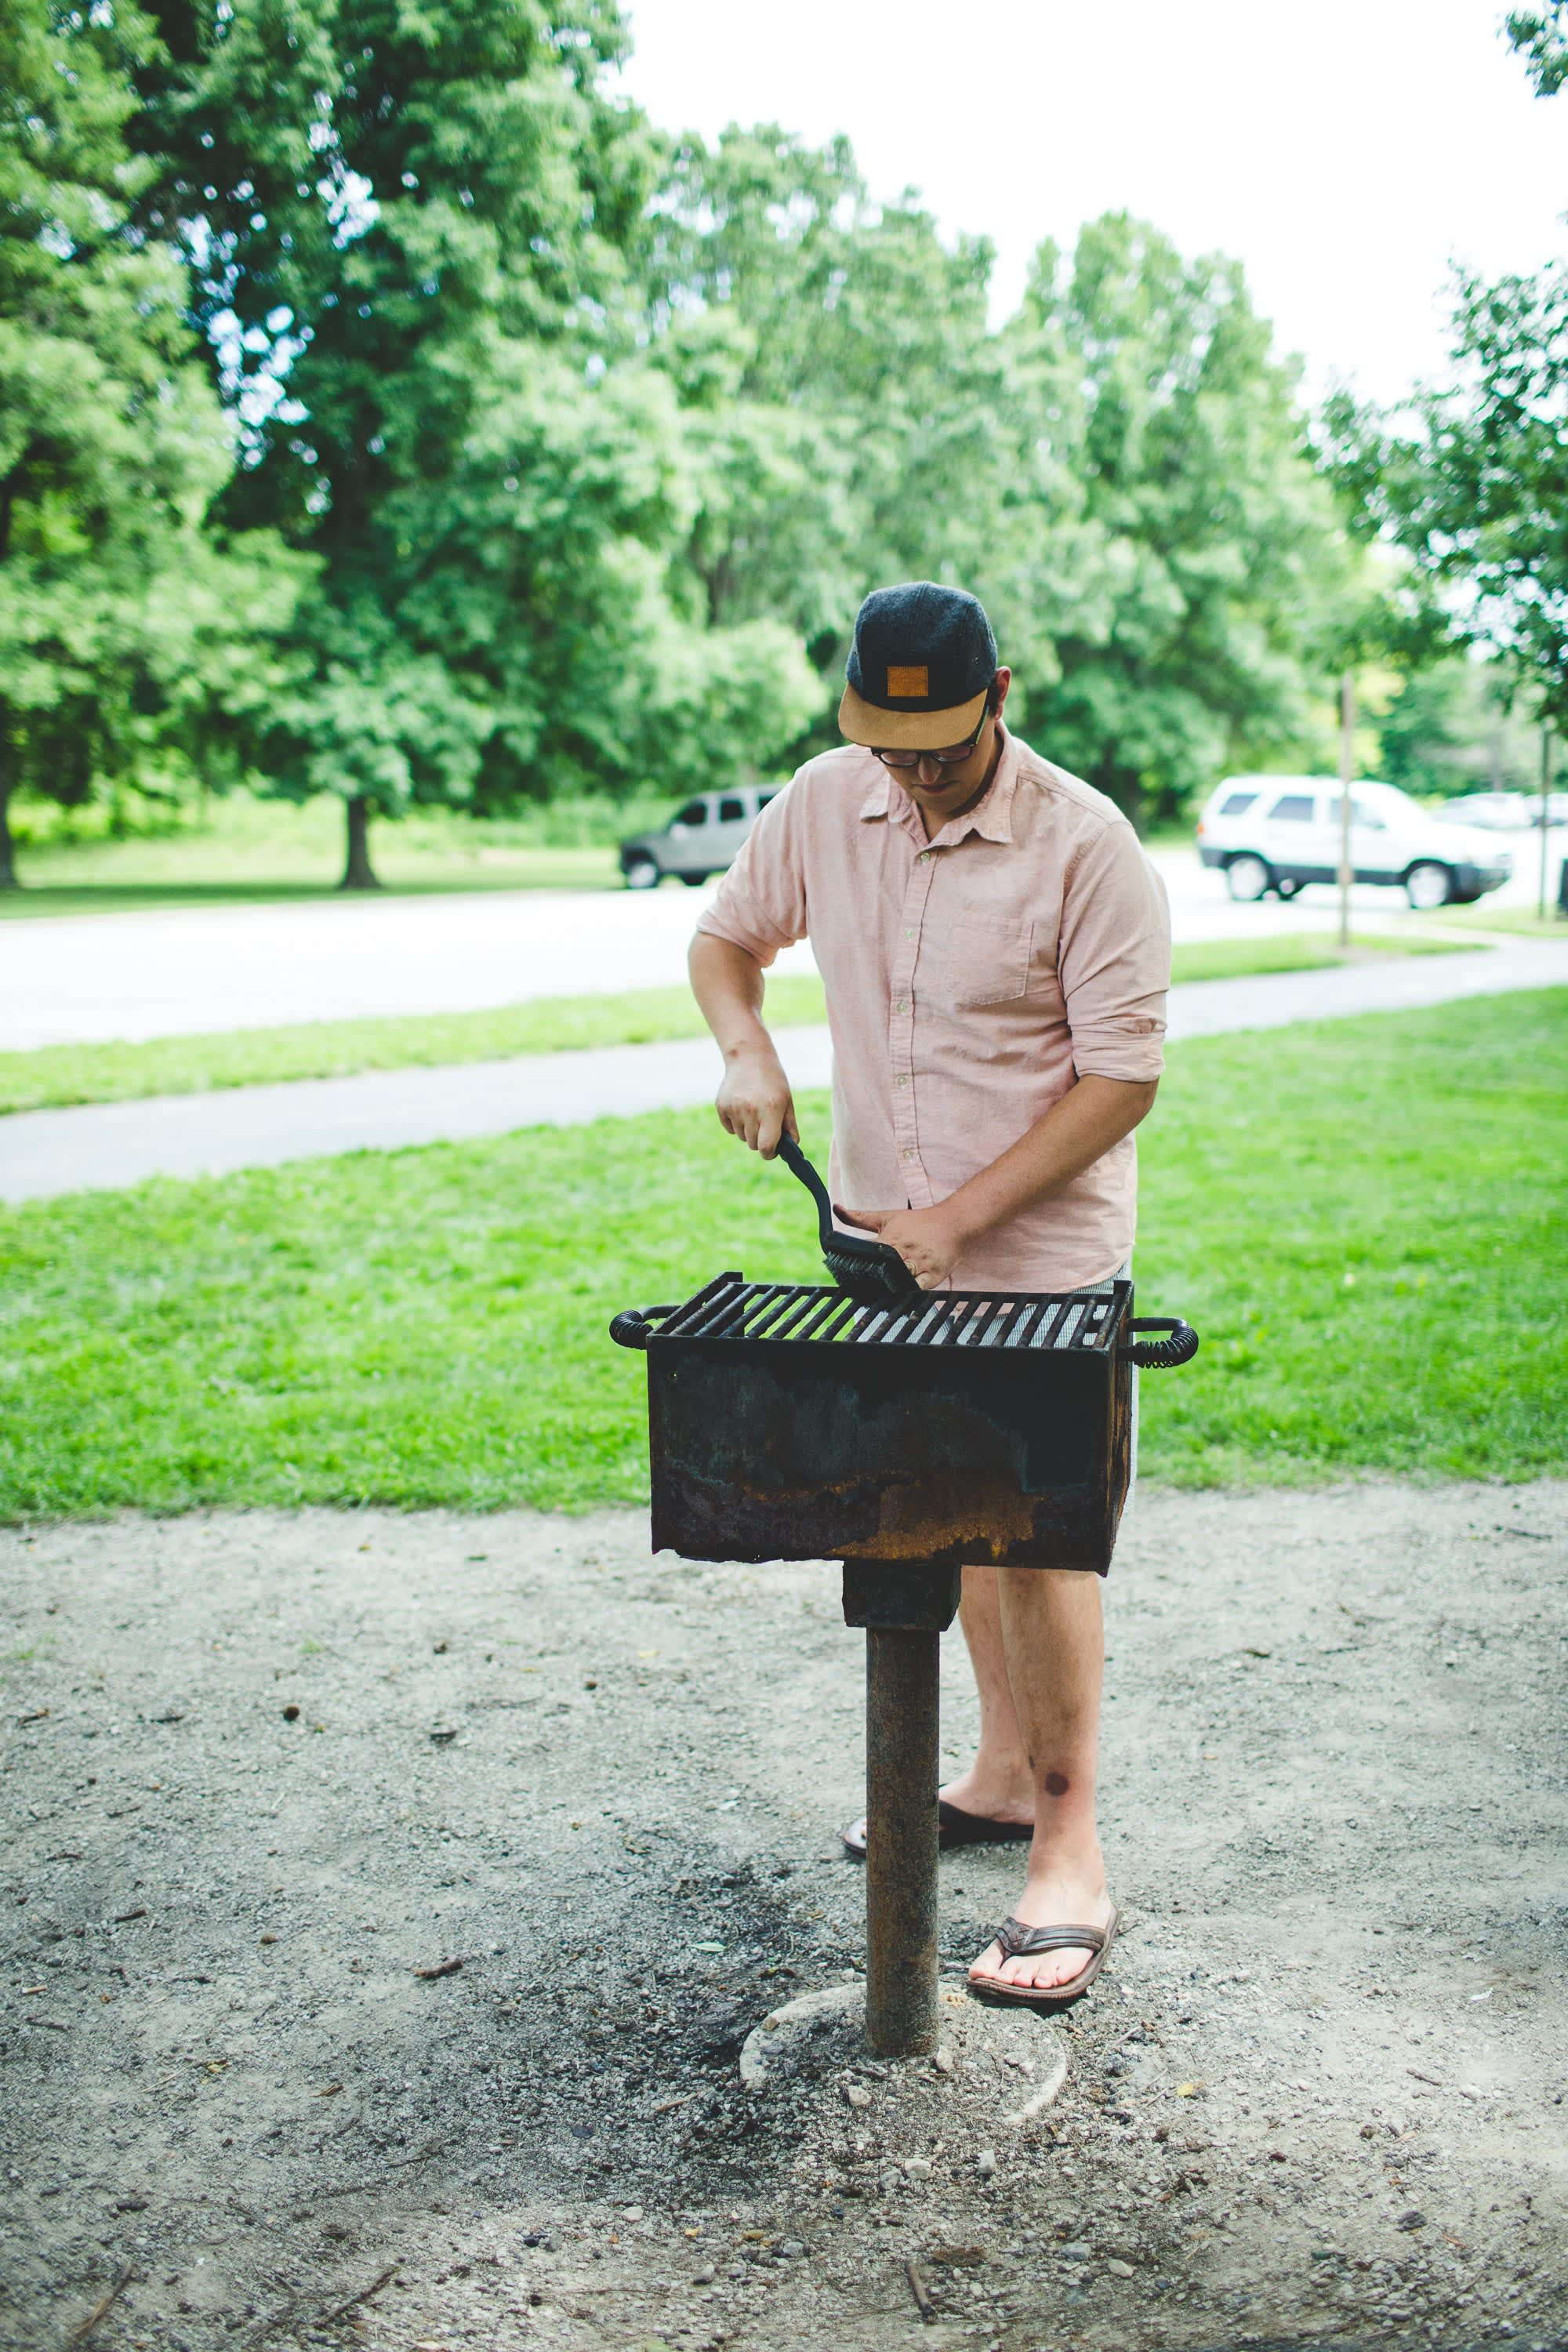 Cleaning a park grill.